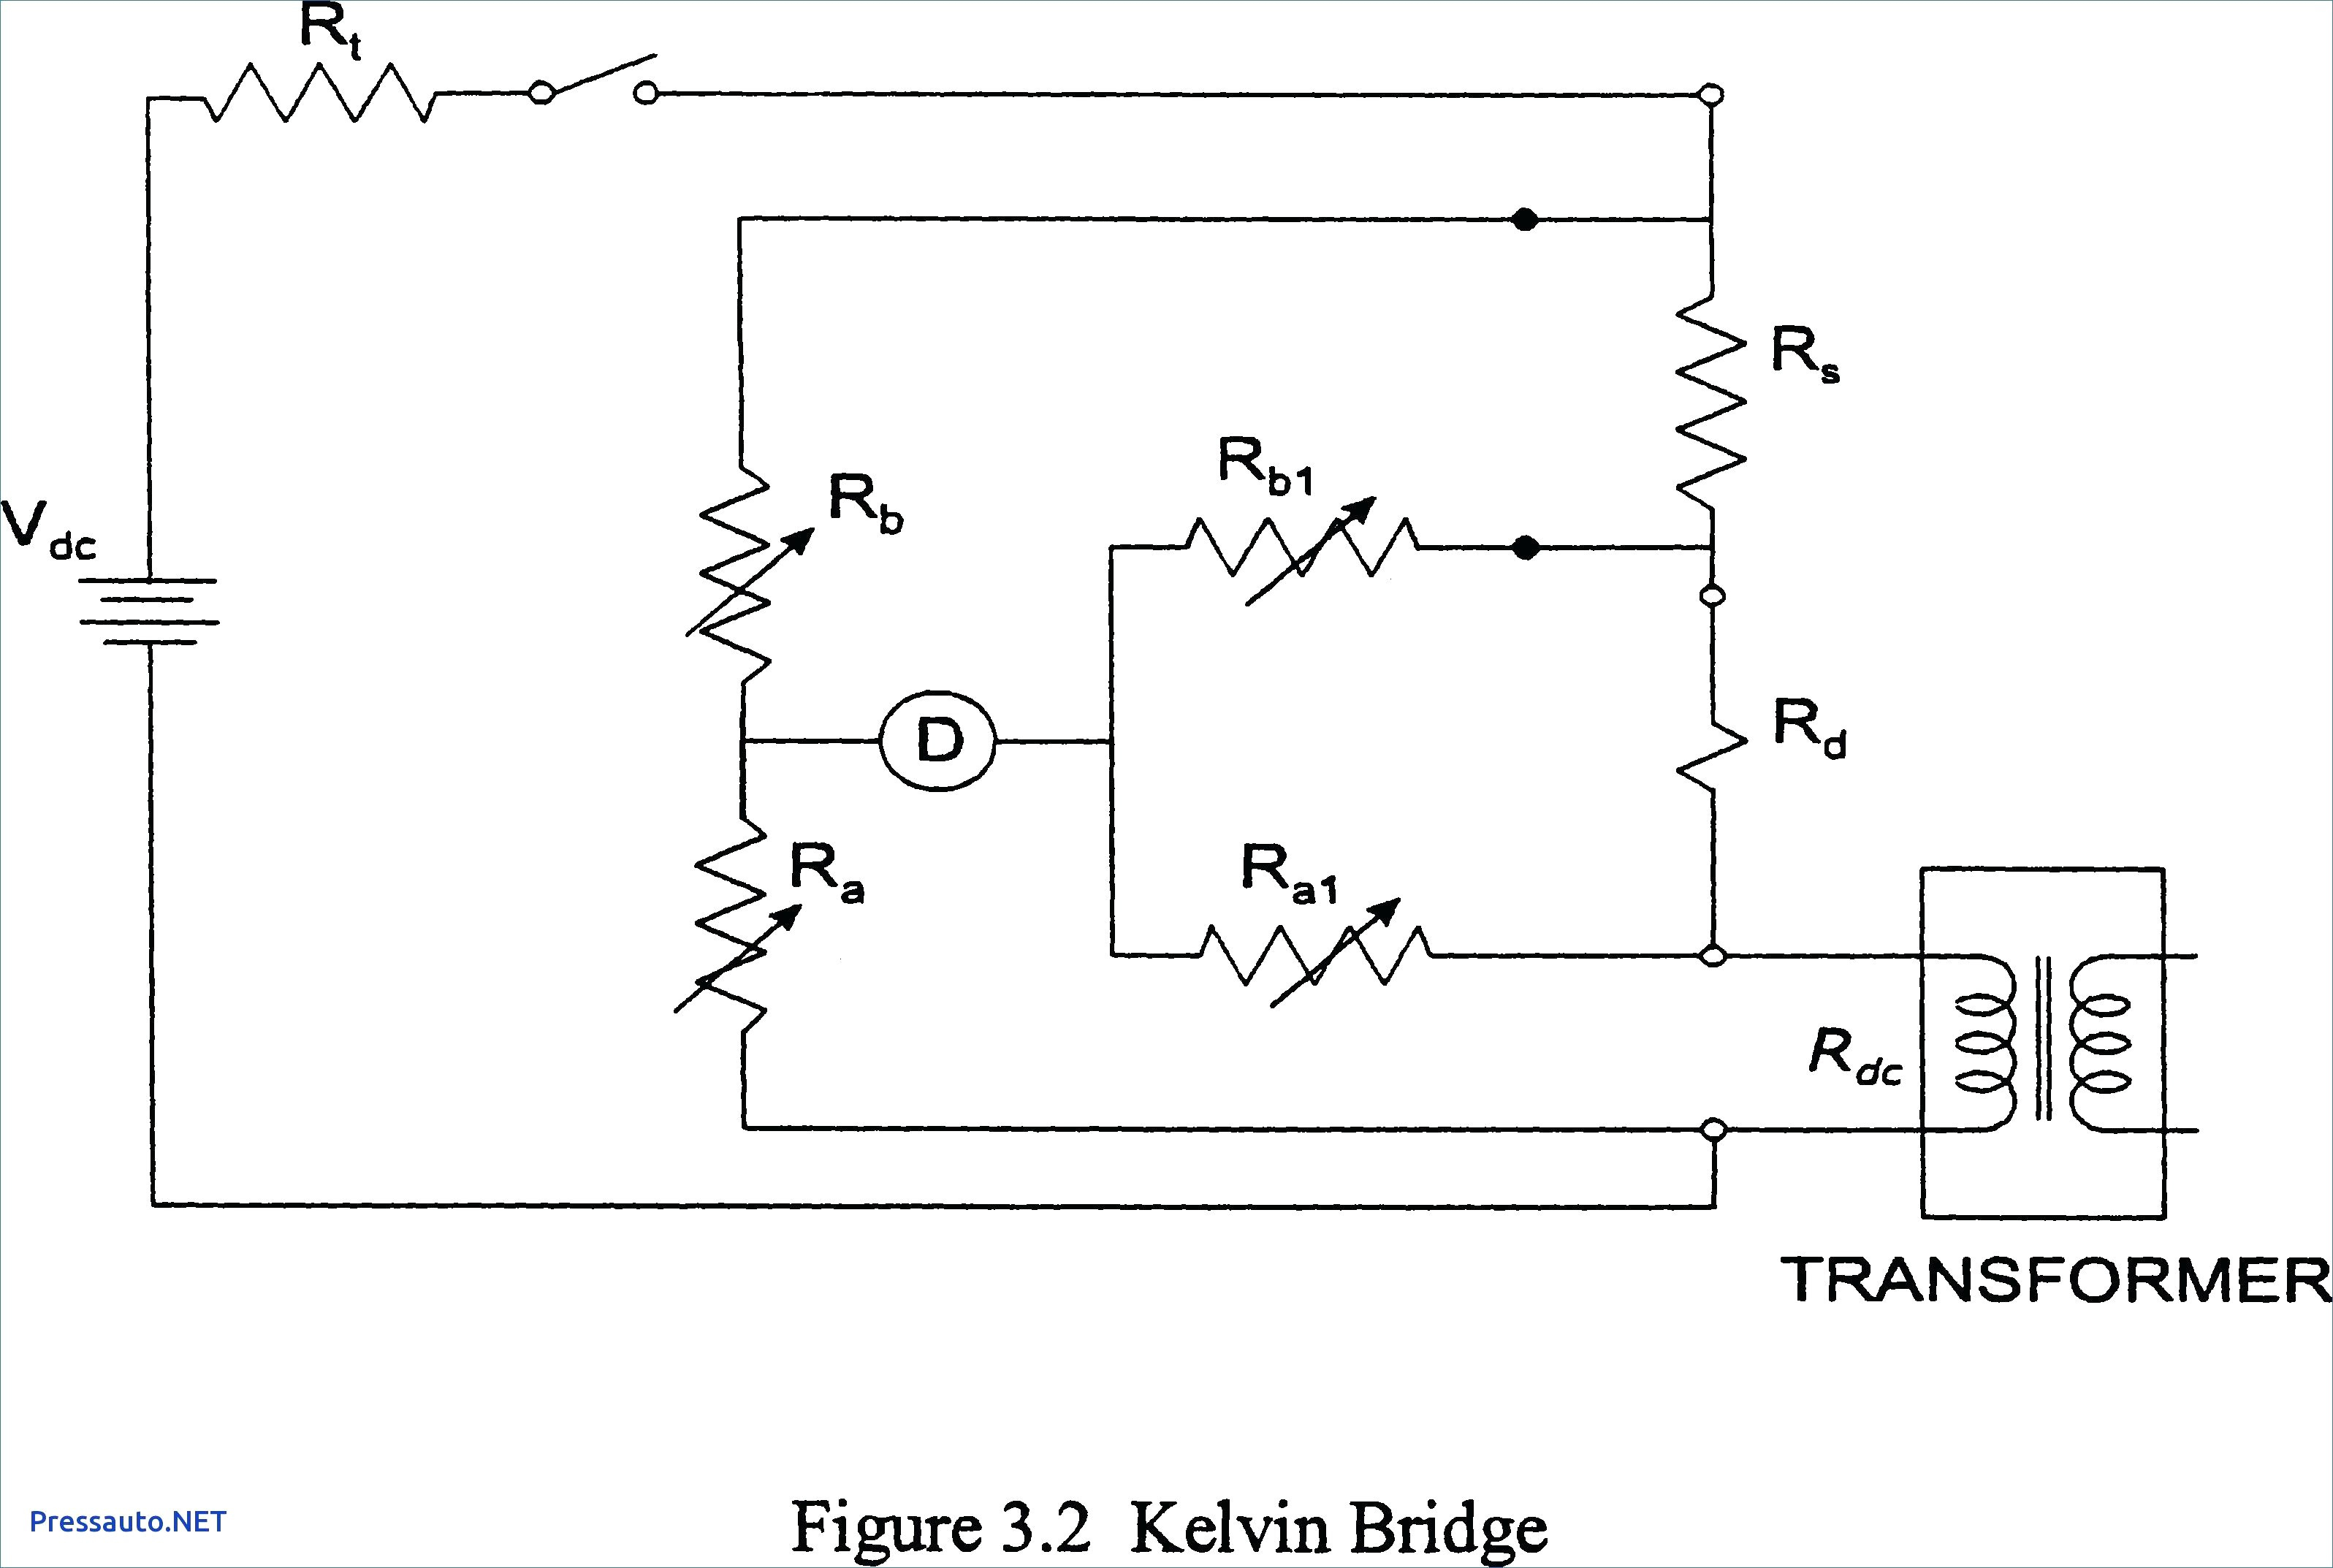 jefferson electric transformer wiring diagram Download-Buck Boost Transformer Wiring Diagram Fresh Jefferson Electric 416 16-g